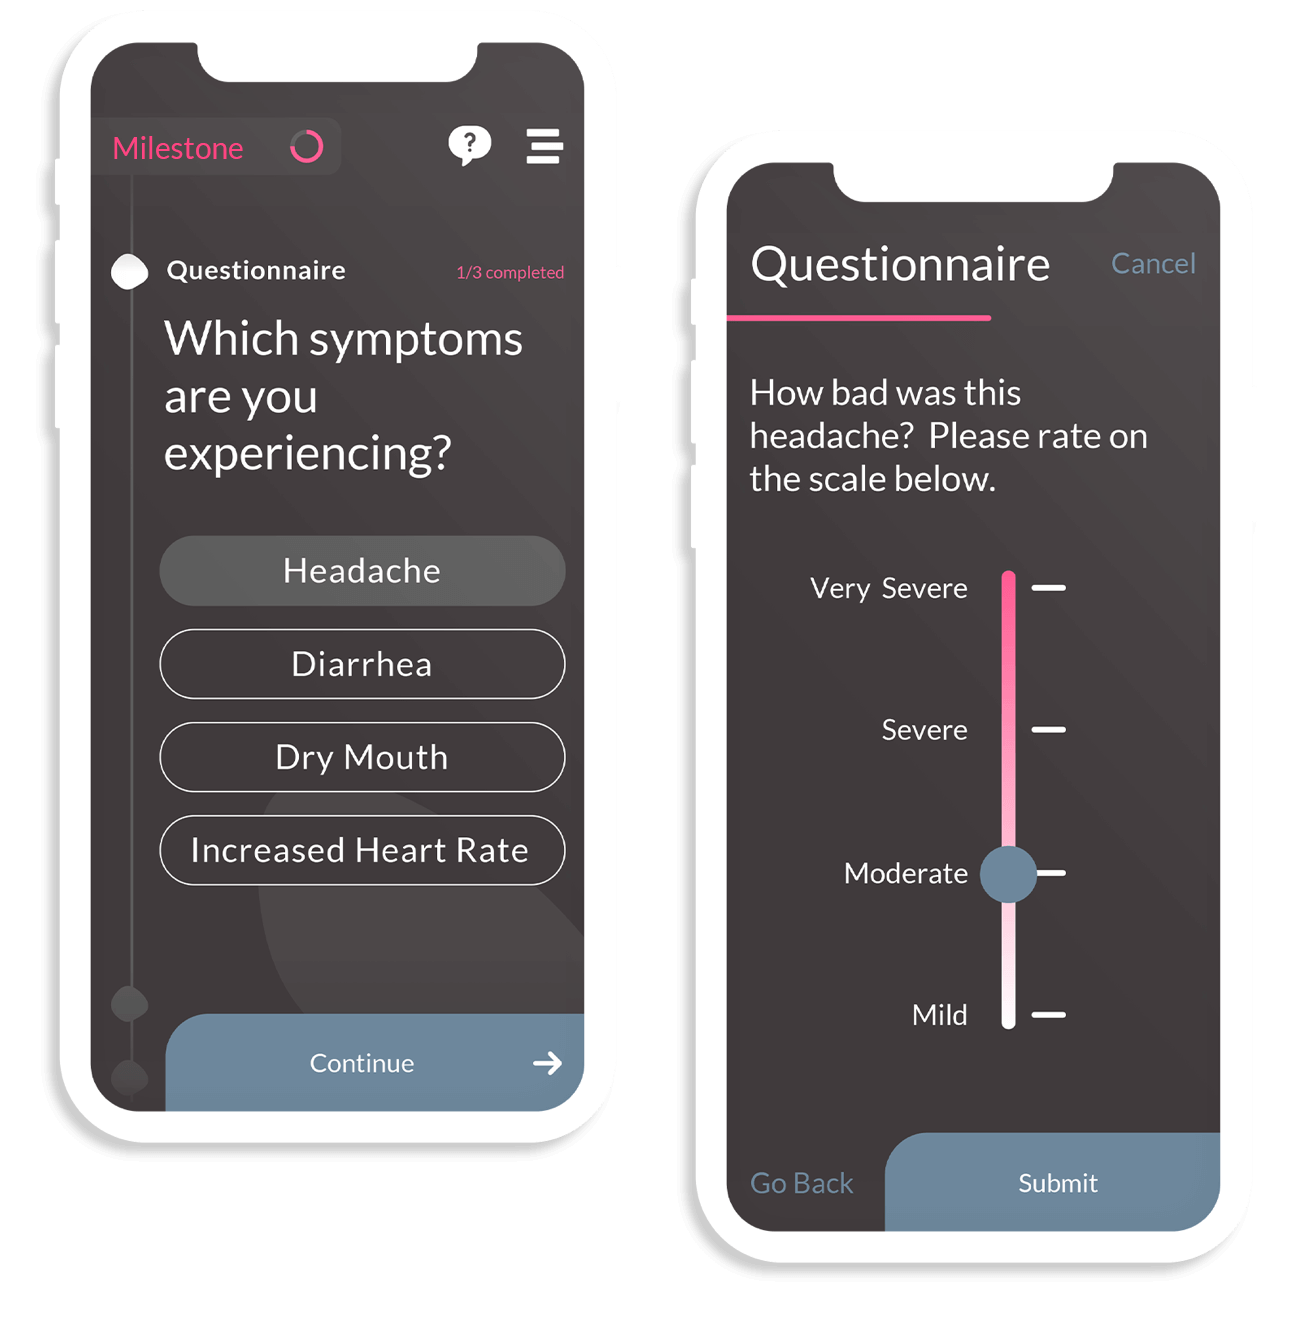 A side-by-side of a questionnaire measuring presence of various symptoms (i.e. diarrhea, dry mouth) and a corresponding sliding scale that describes headache severity.